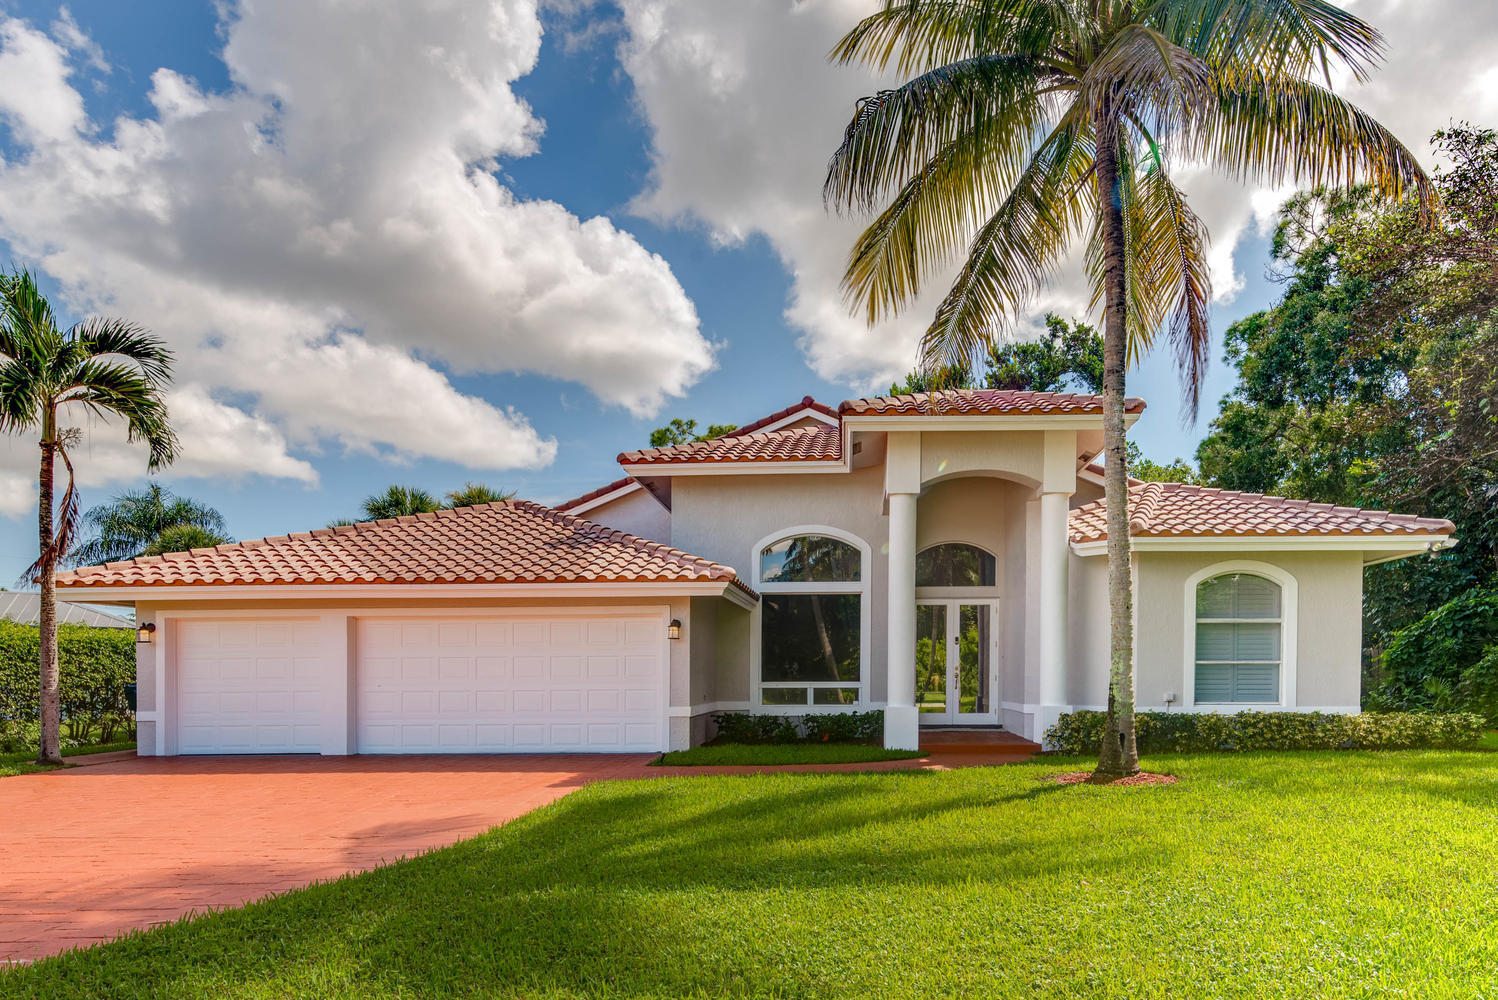 250 Nw 20th Avenue Boca Raton, FL 33486